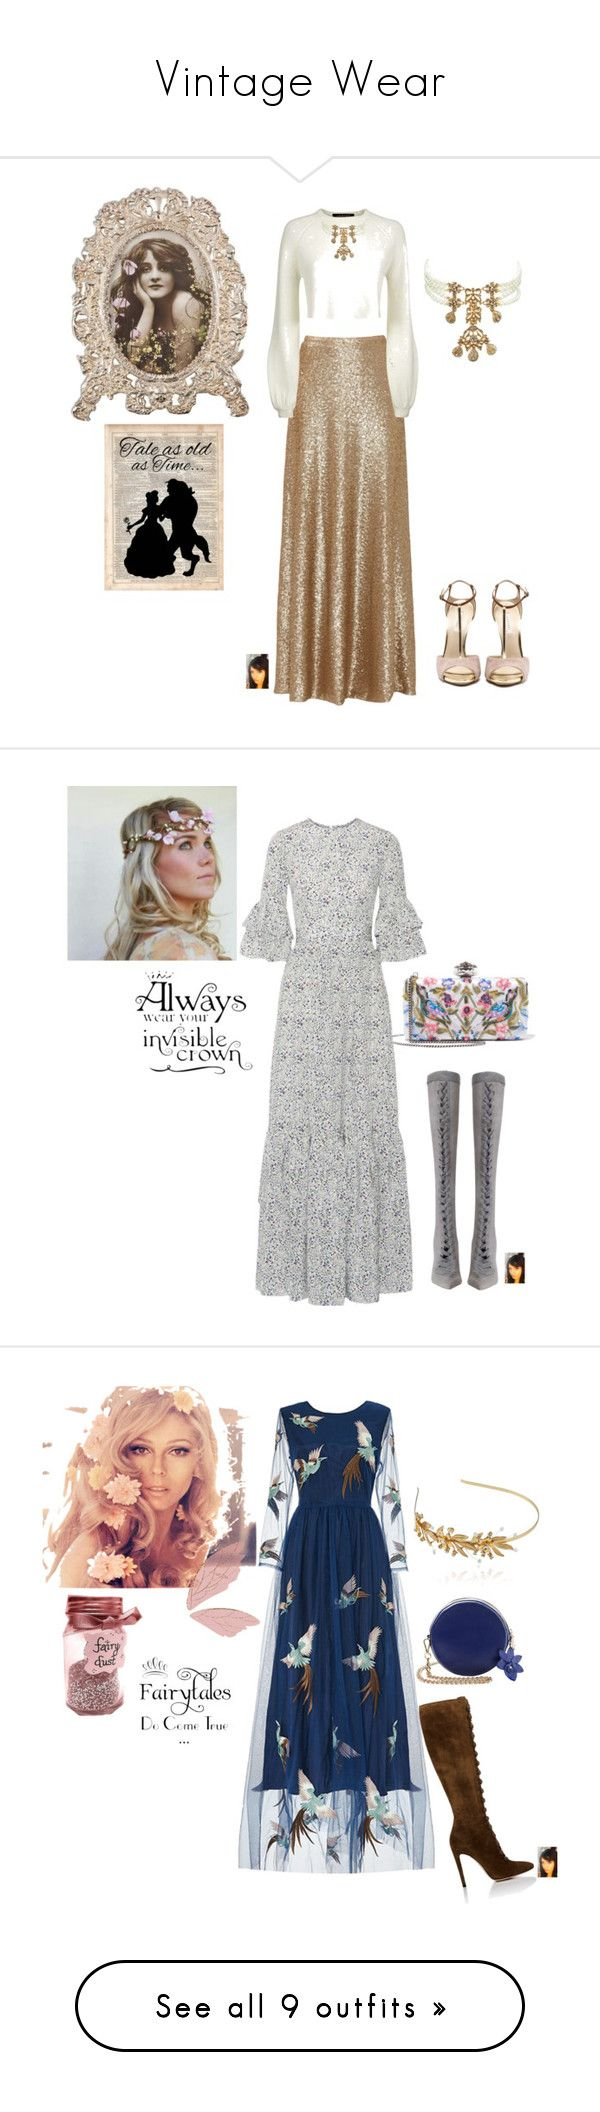 """""""Vintage Wear"""" by gaya-vas ❤ liked on Polyvore featuring Kenneth Jay Lane, Slate & Willow, Jaeger, Disney, vintage, CO, Zimmermann, Alexander McQueen, Gianvito Rossi and Linni Lavrova"""